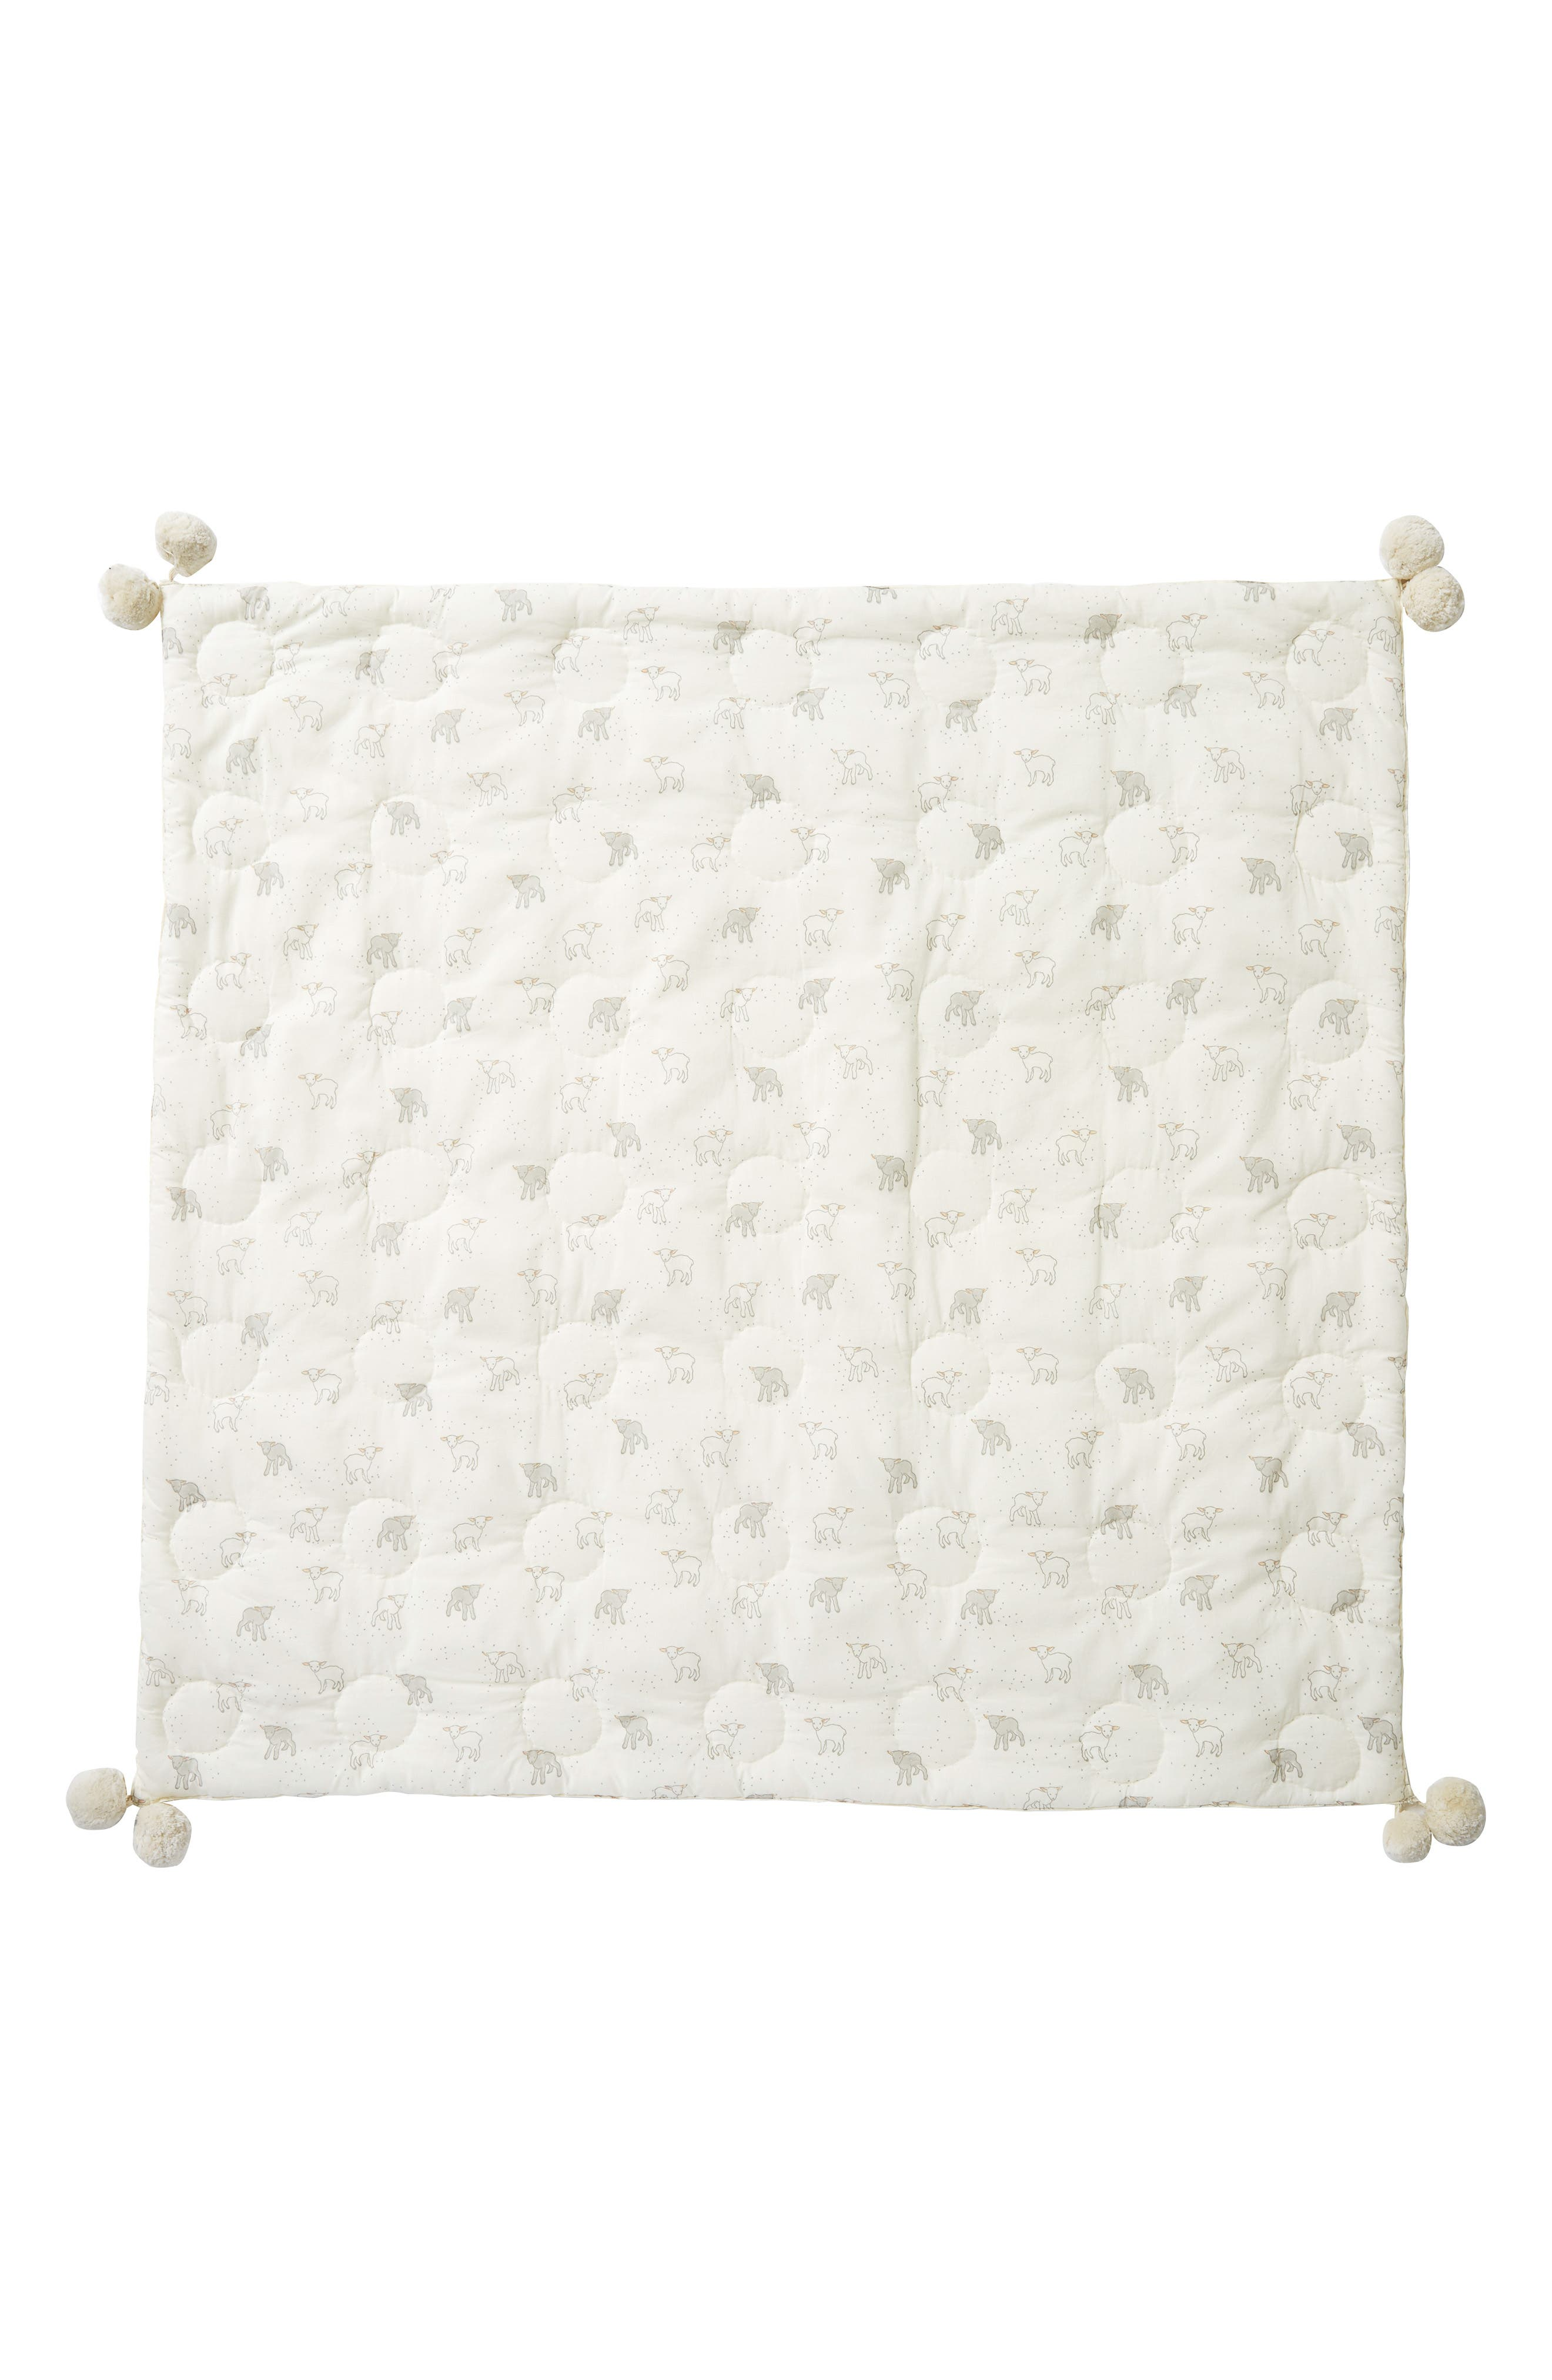 Little Lamb Baby Blanket,                             Alternate thumbnail 3, color,                             907